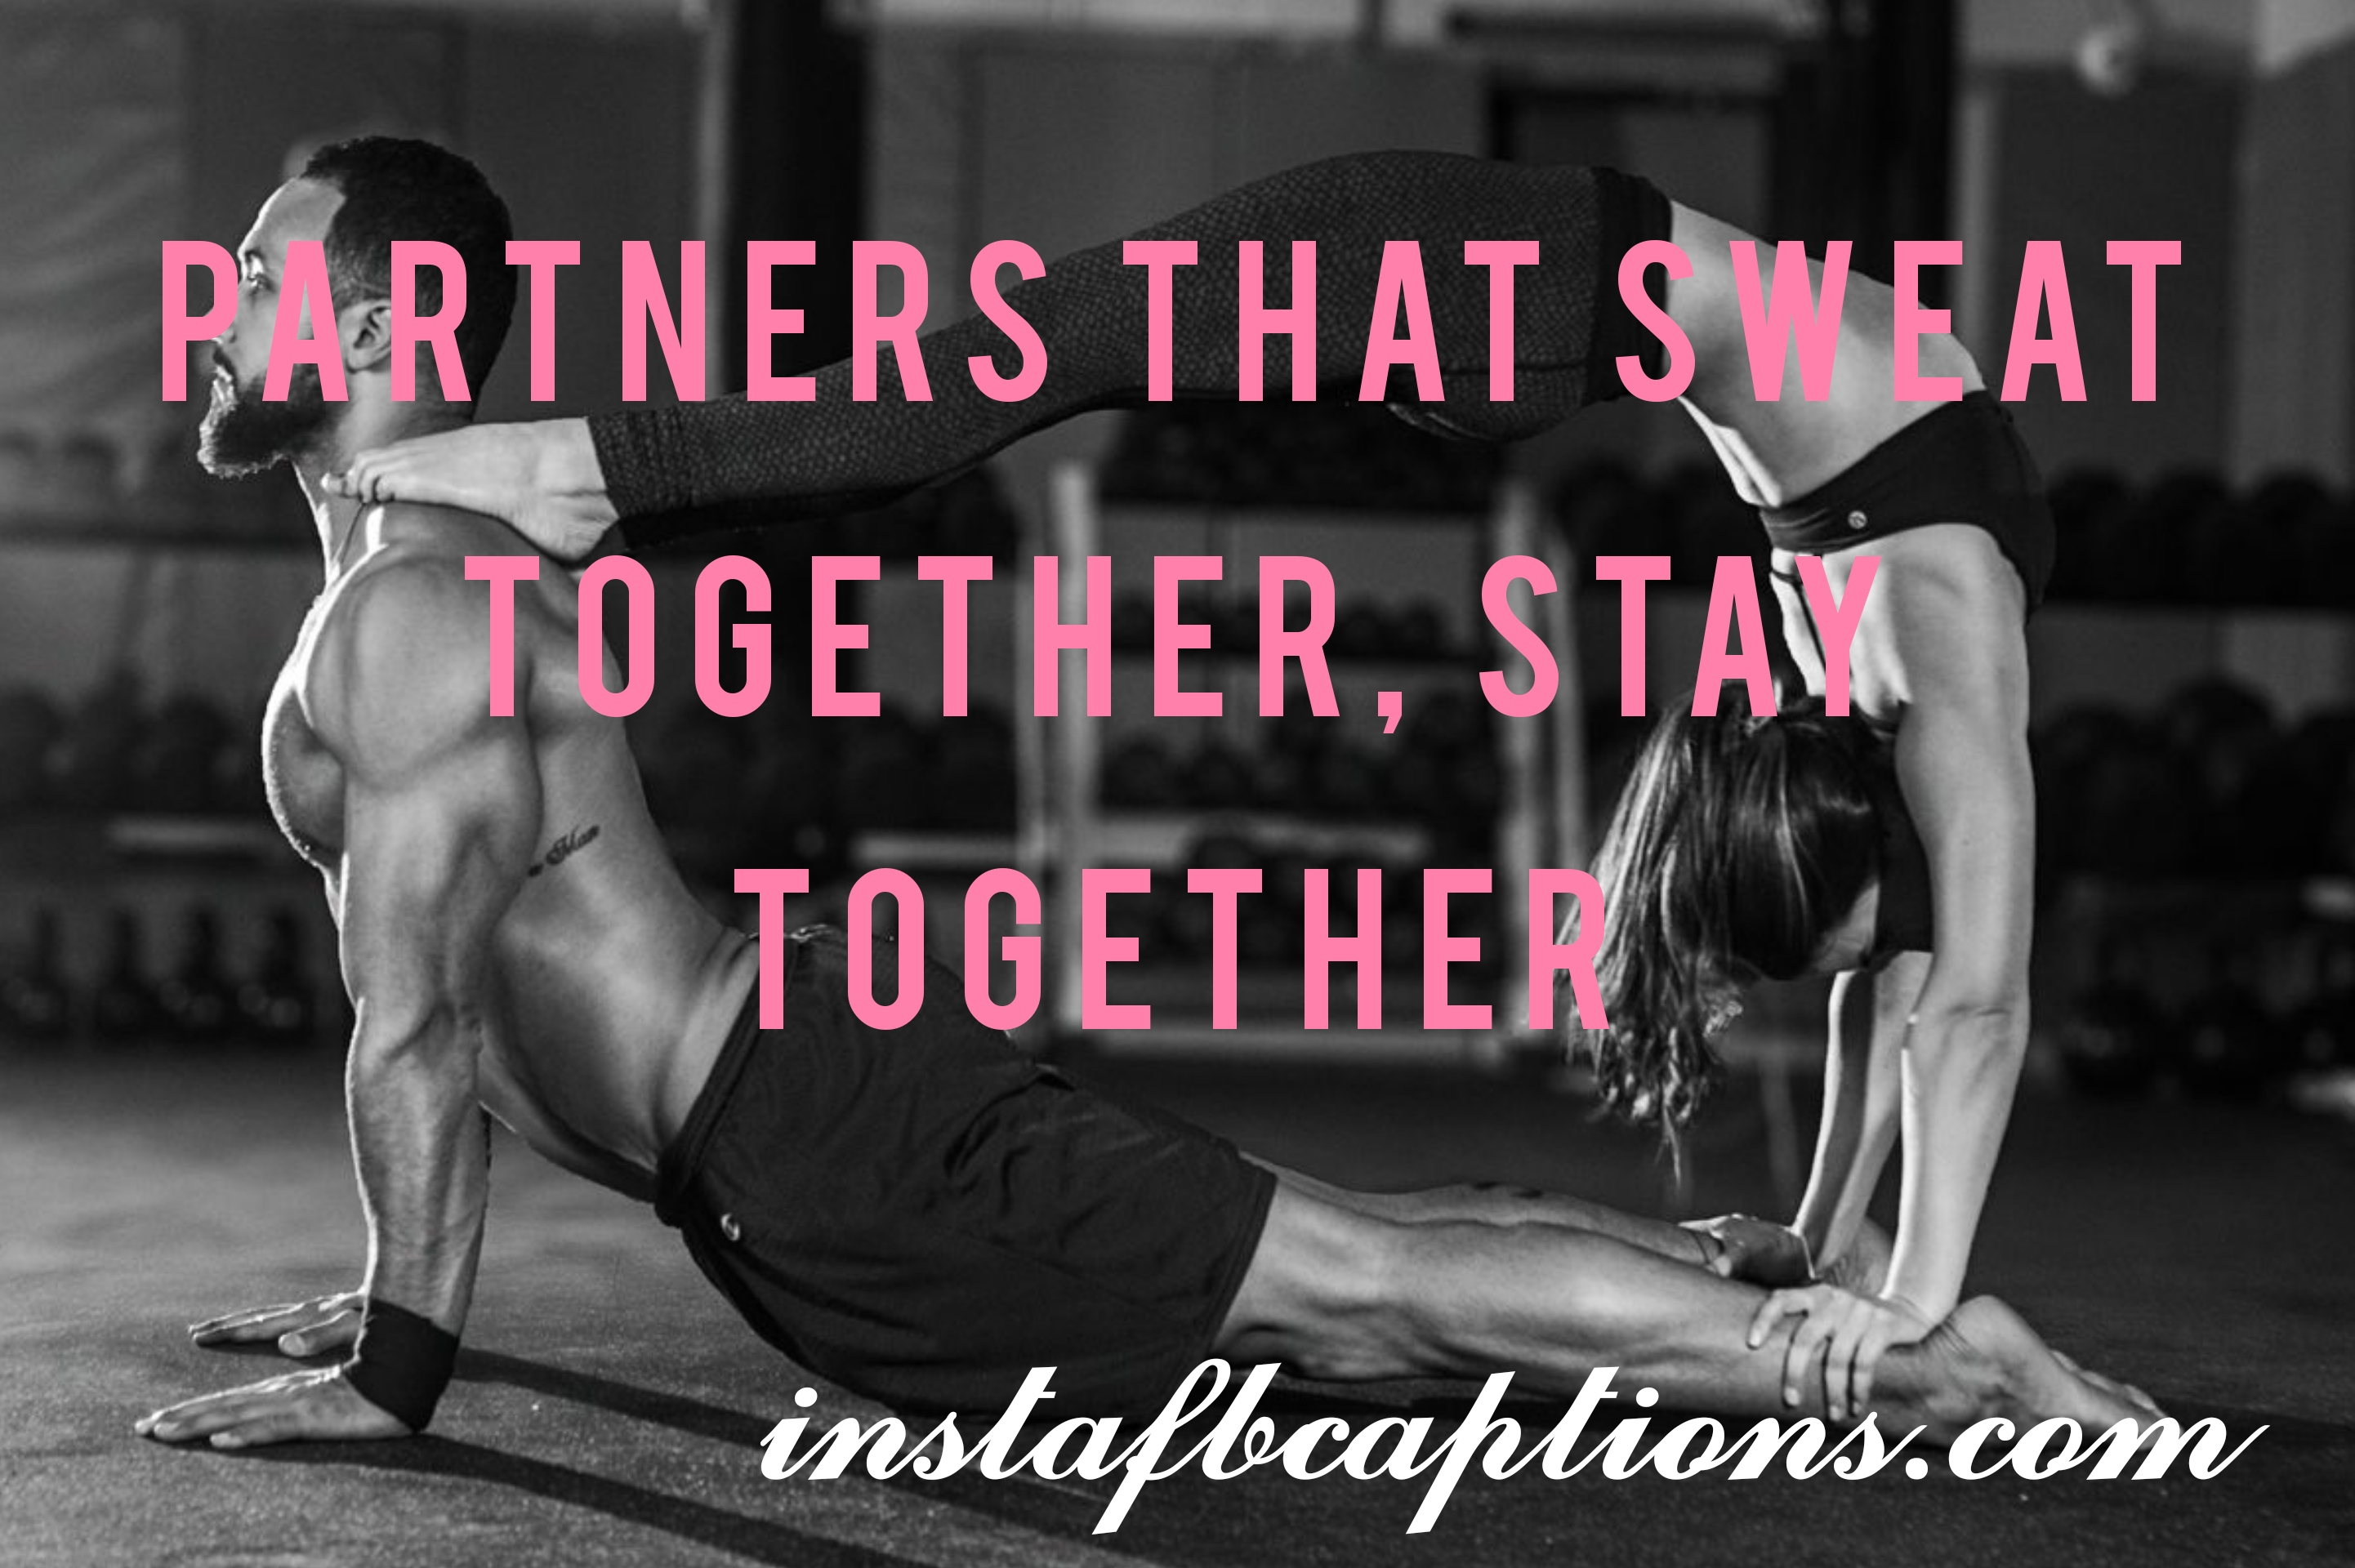 Partners That Sweat Together, Stay Together  - Partners that sweat together stay together - Fitness Instagram caption||(Gym Goals Home Workout)